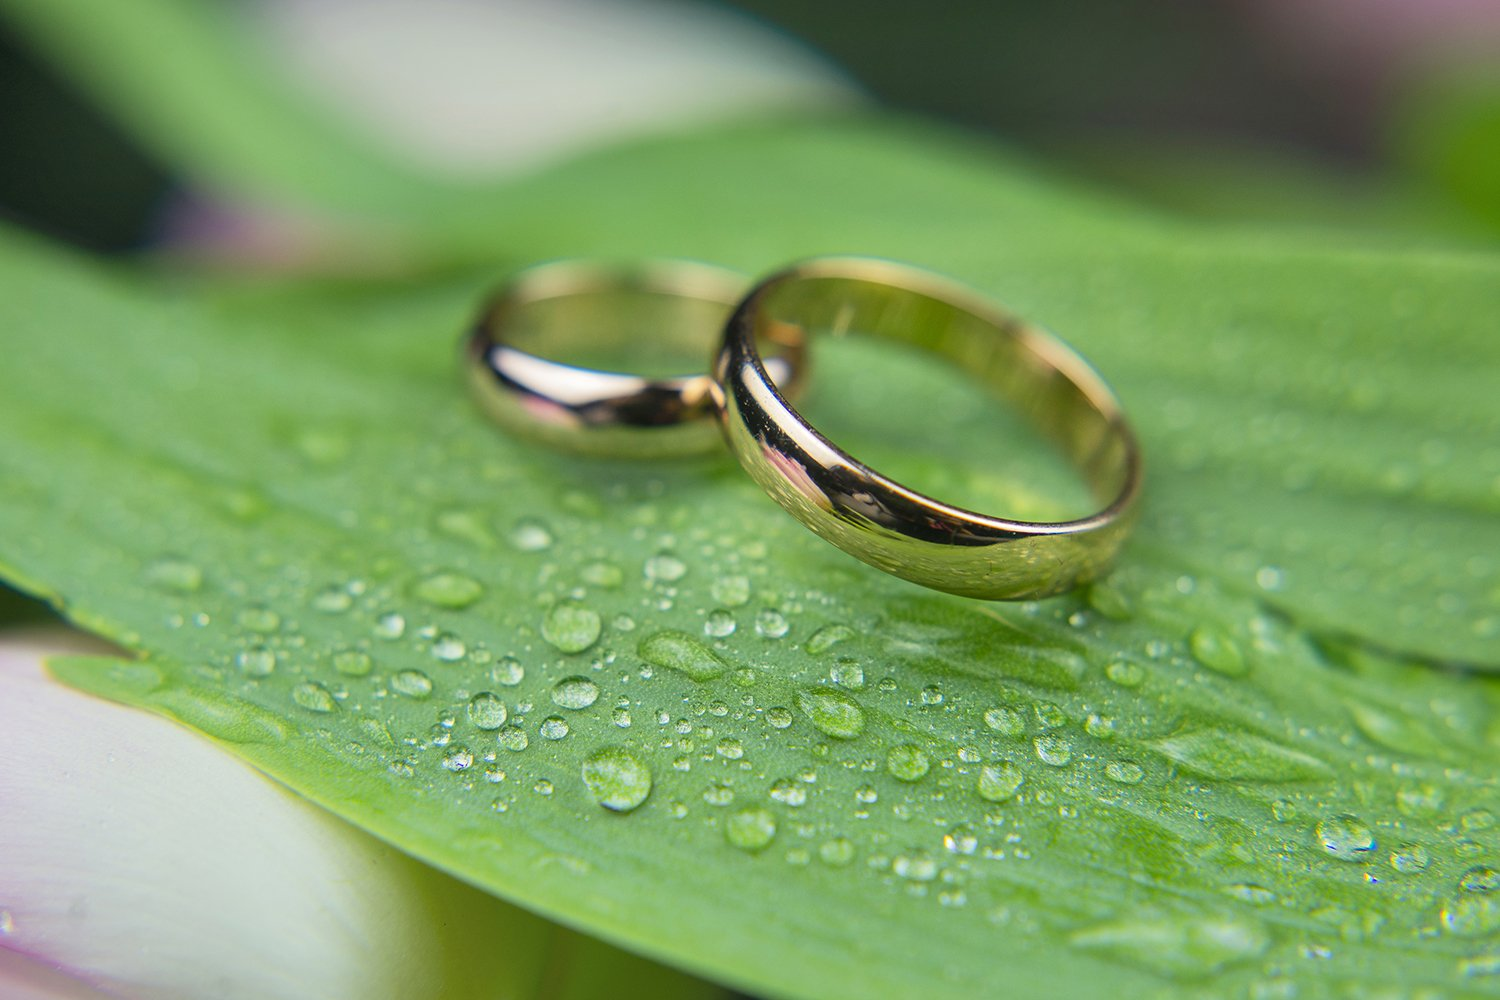 wedding gold rings on a green leaf plant example image 1